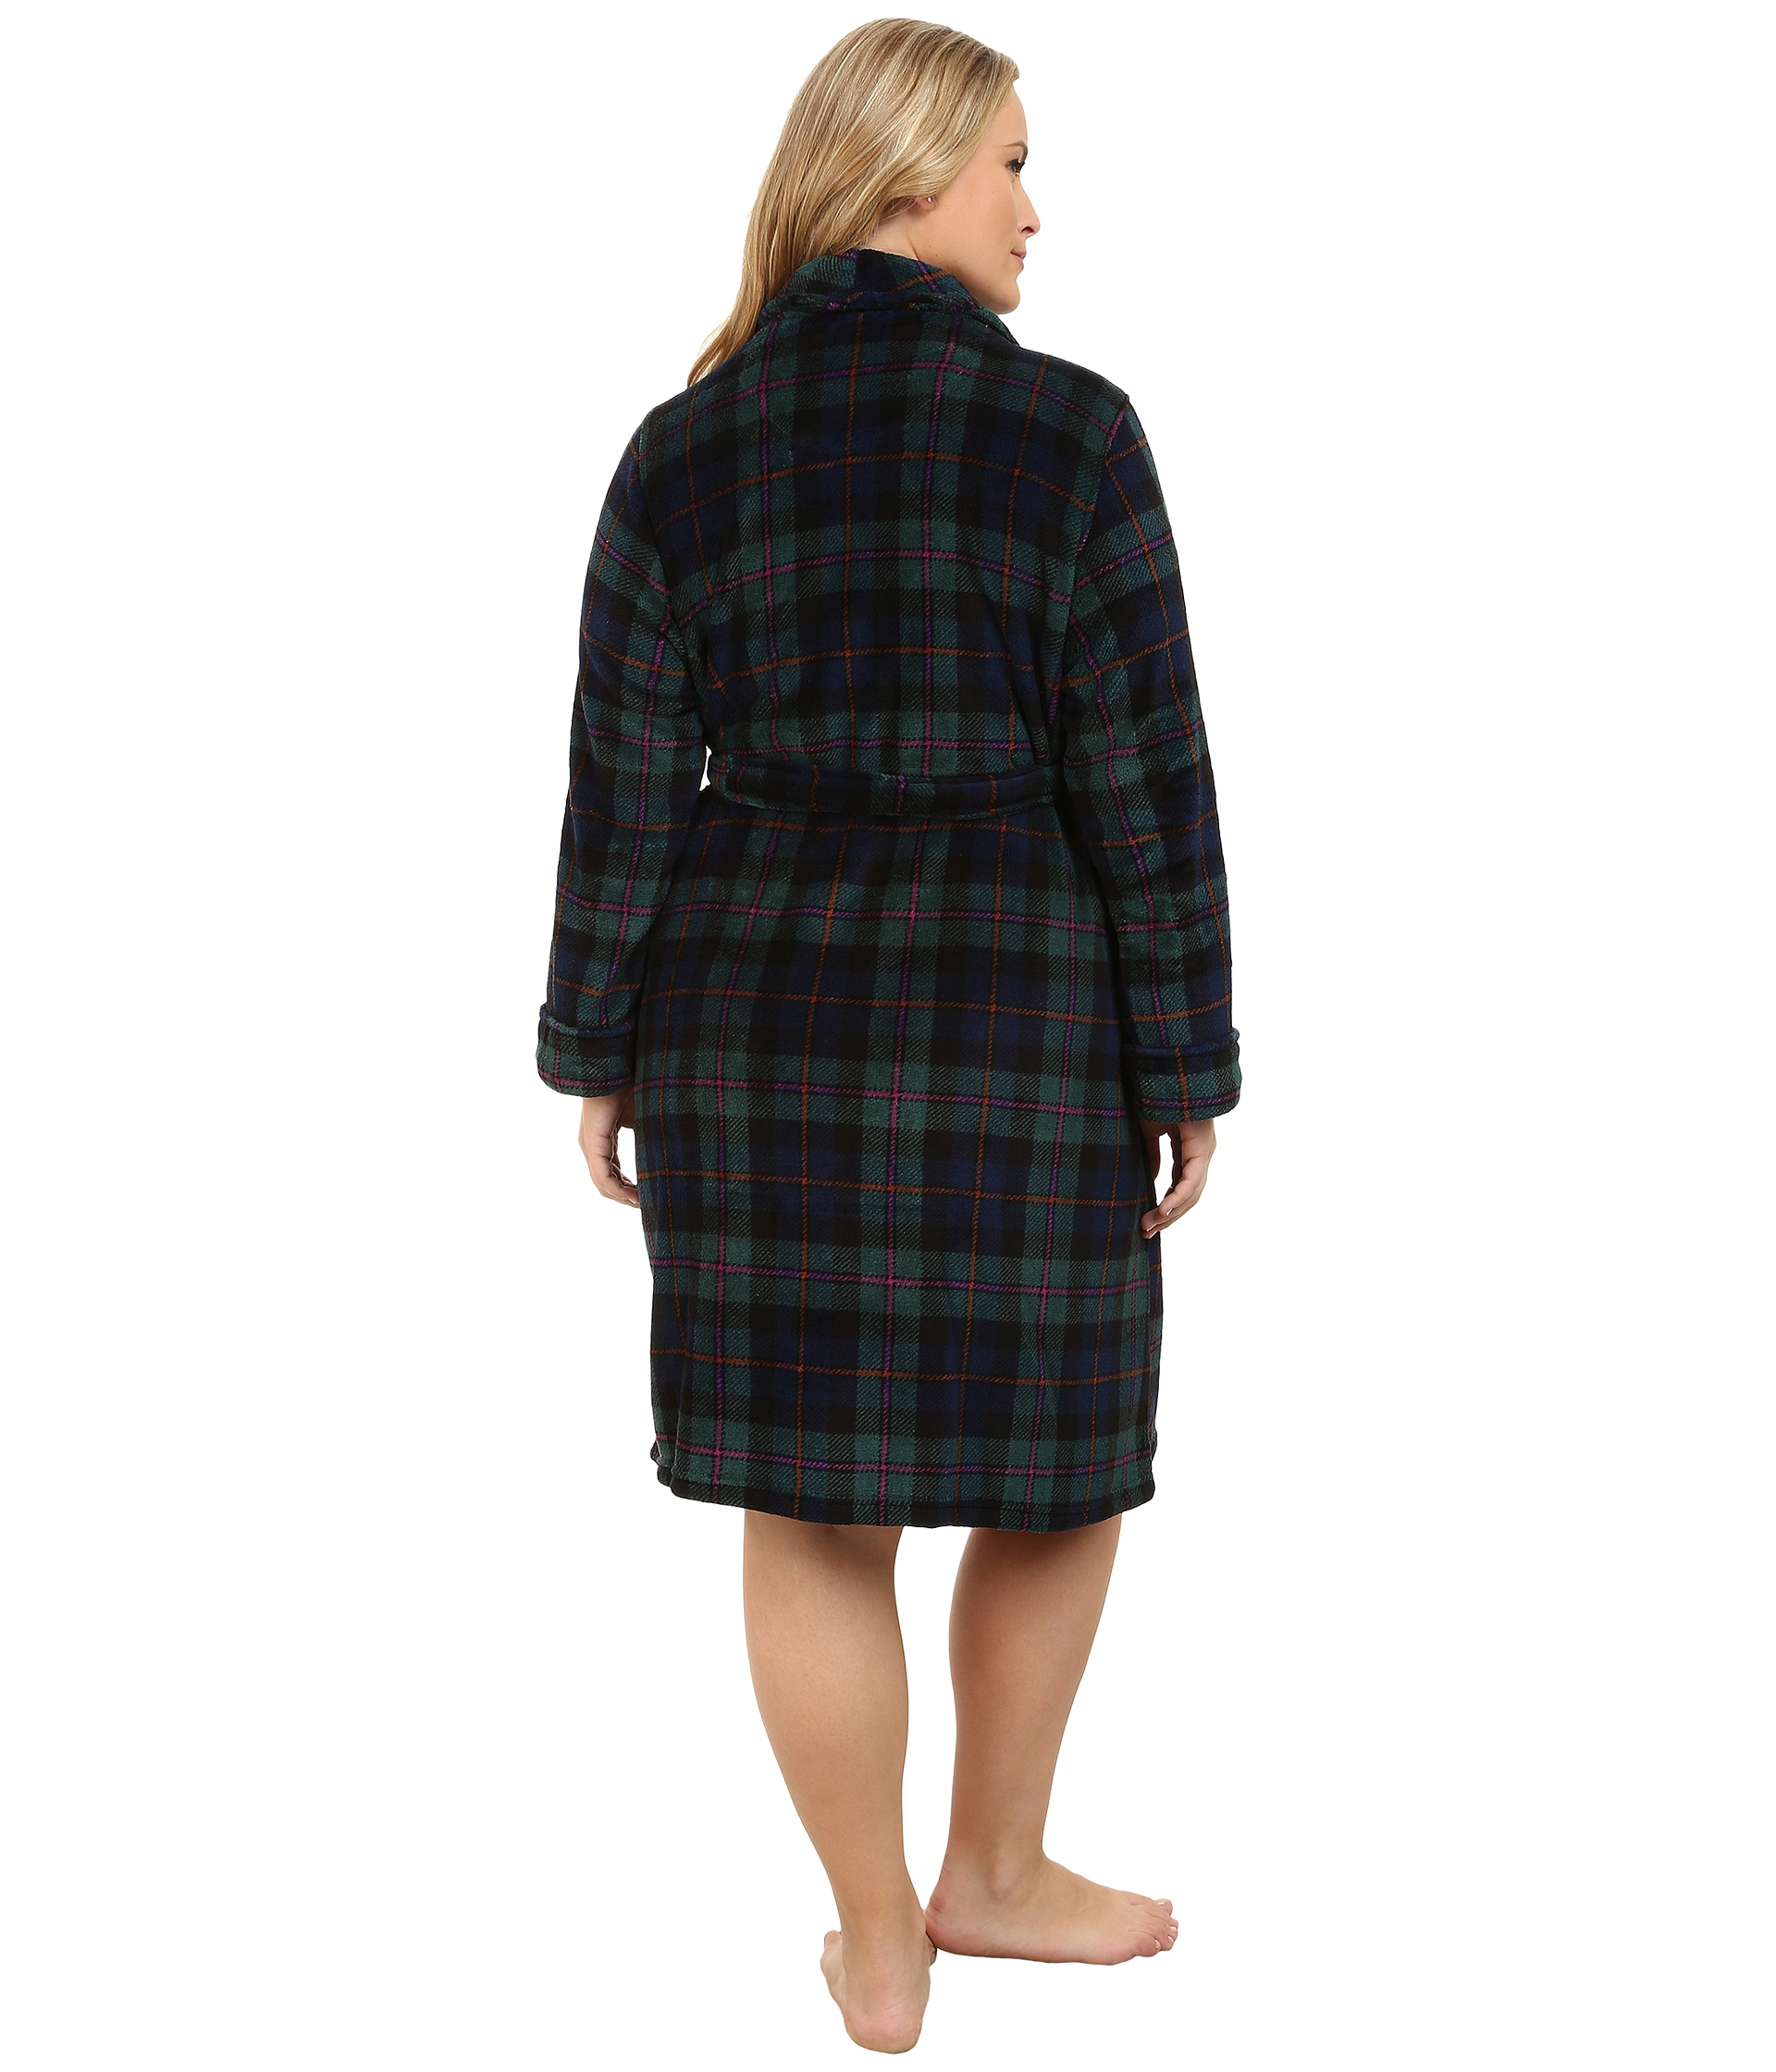 lauren ralph lauren plus size folded so soft terry short robe wallace plaid green windsor navy. Black Bedroom Furniture Sets. Home Design Ideas